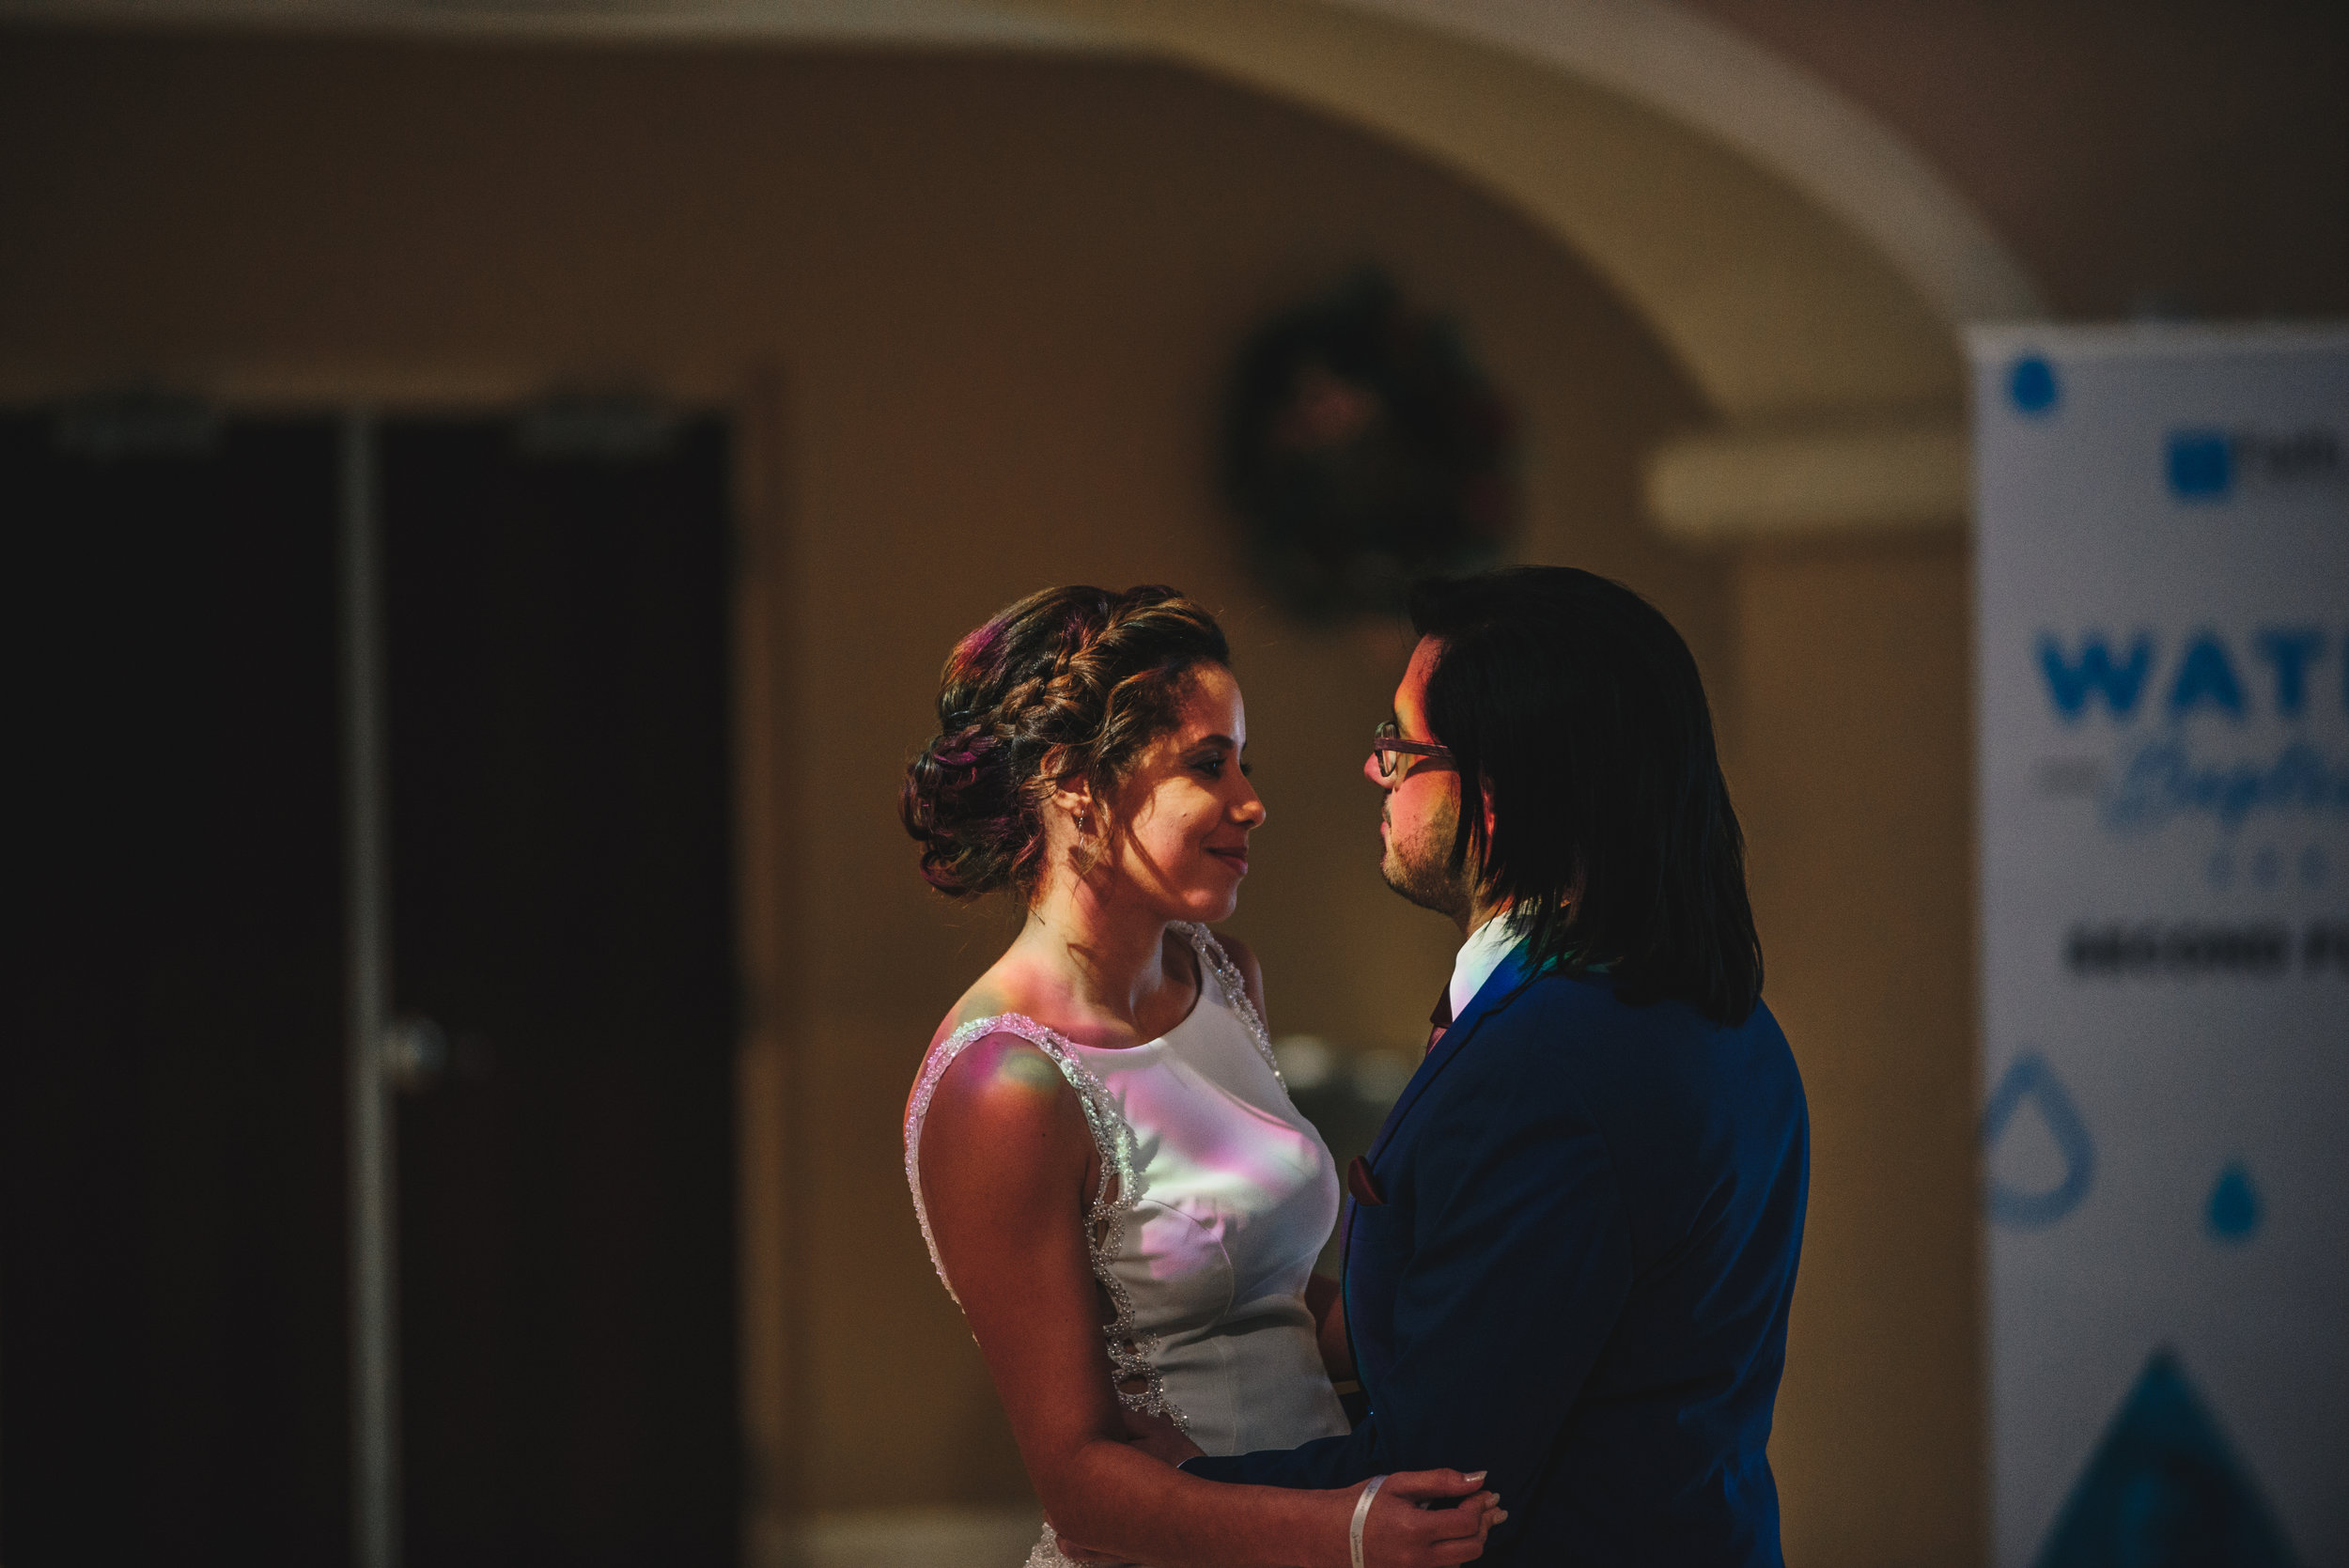 Los-Vargas-Photo-Central-Florida-Christmas-Wedding-373.jpg